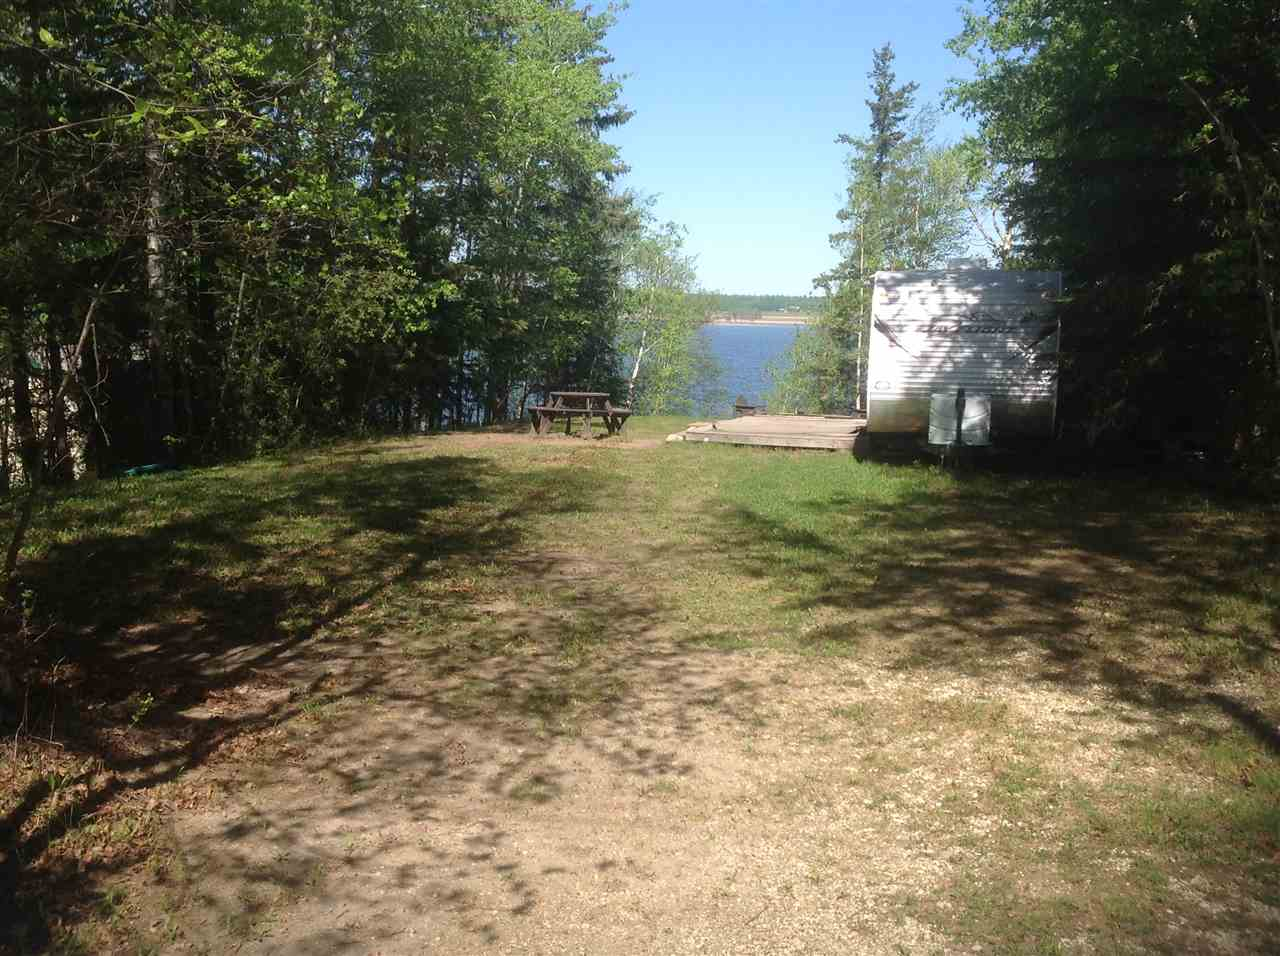 Photo 4: 18 53424 Rge Rd 60: Rural Parkland County Rural Land/Vacant Lot for sale : MLS® # E4019546